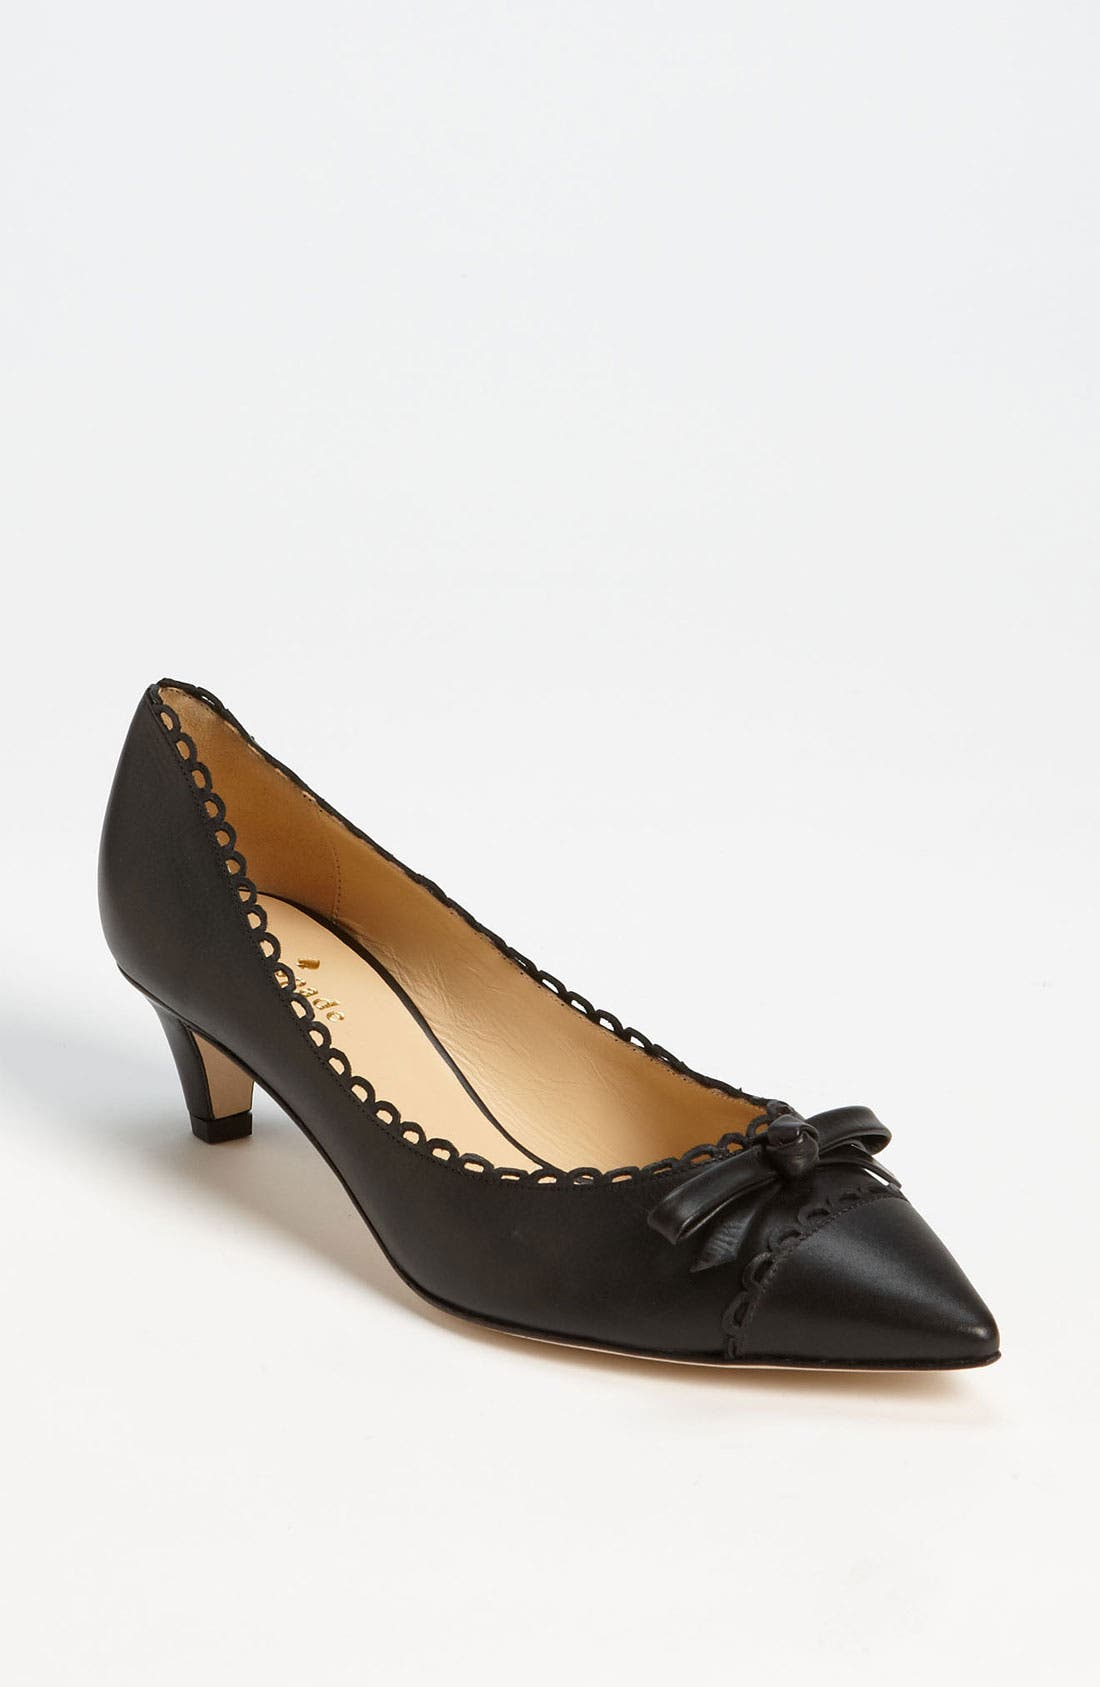 Alternate Image 1 Selected - kate spade new york 'sippy' pump